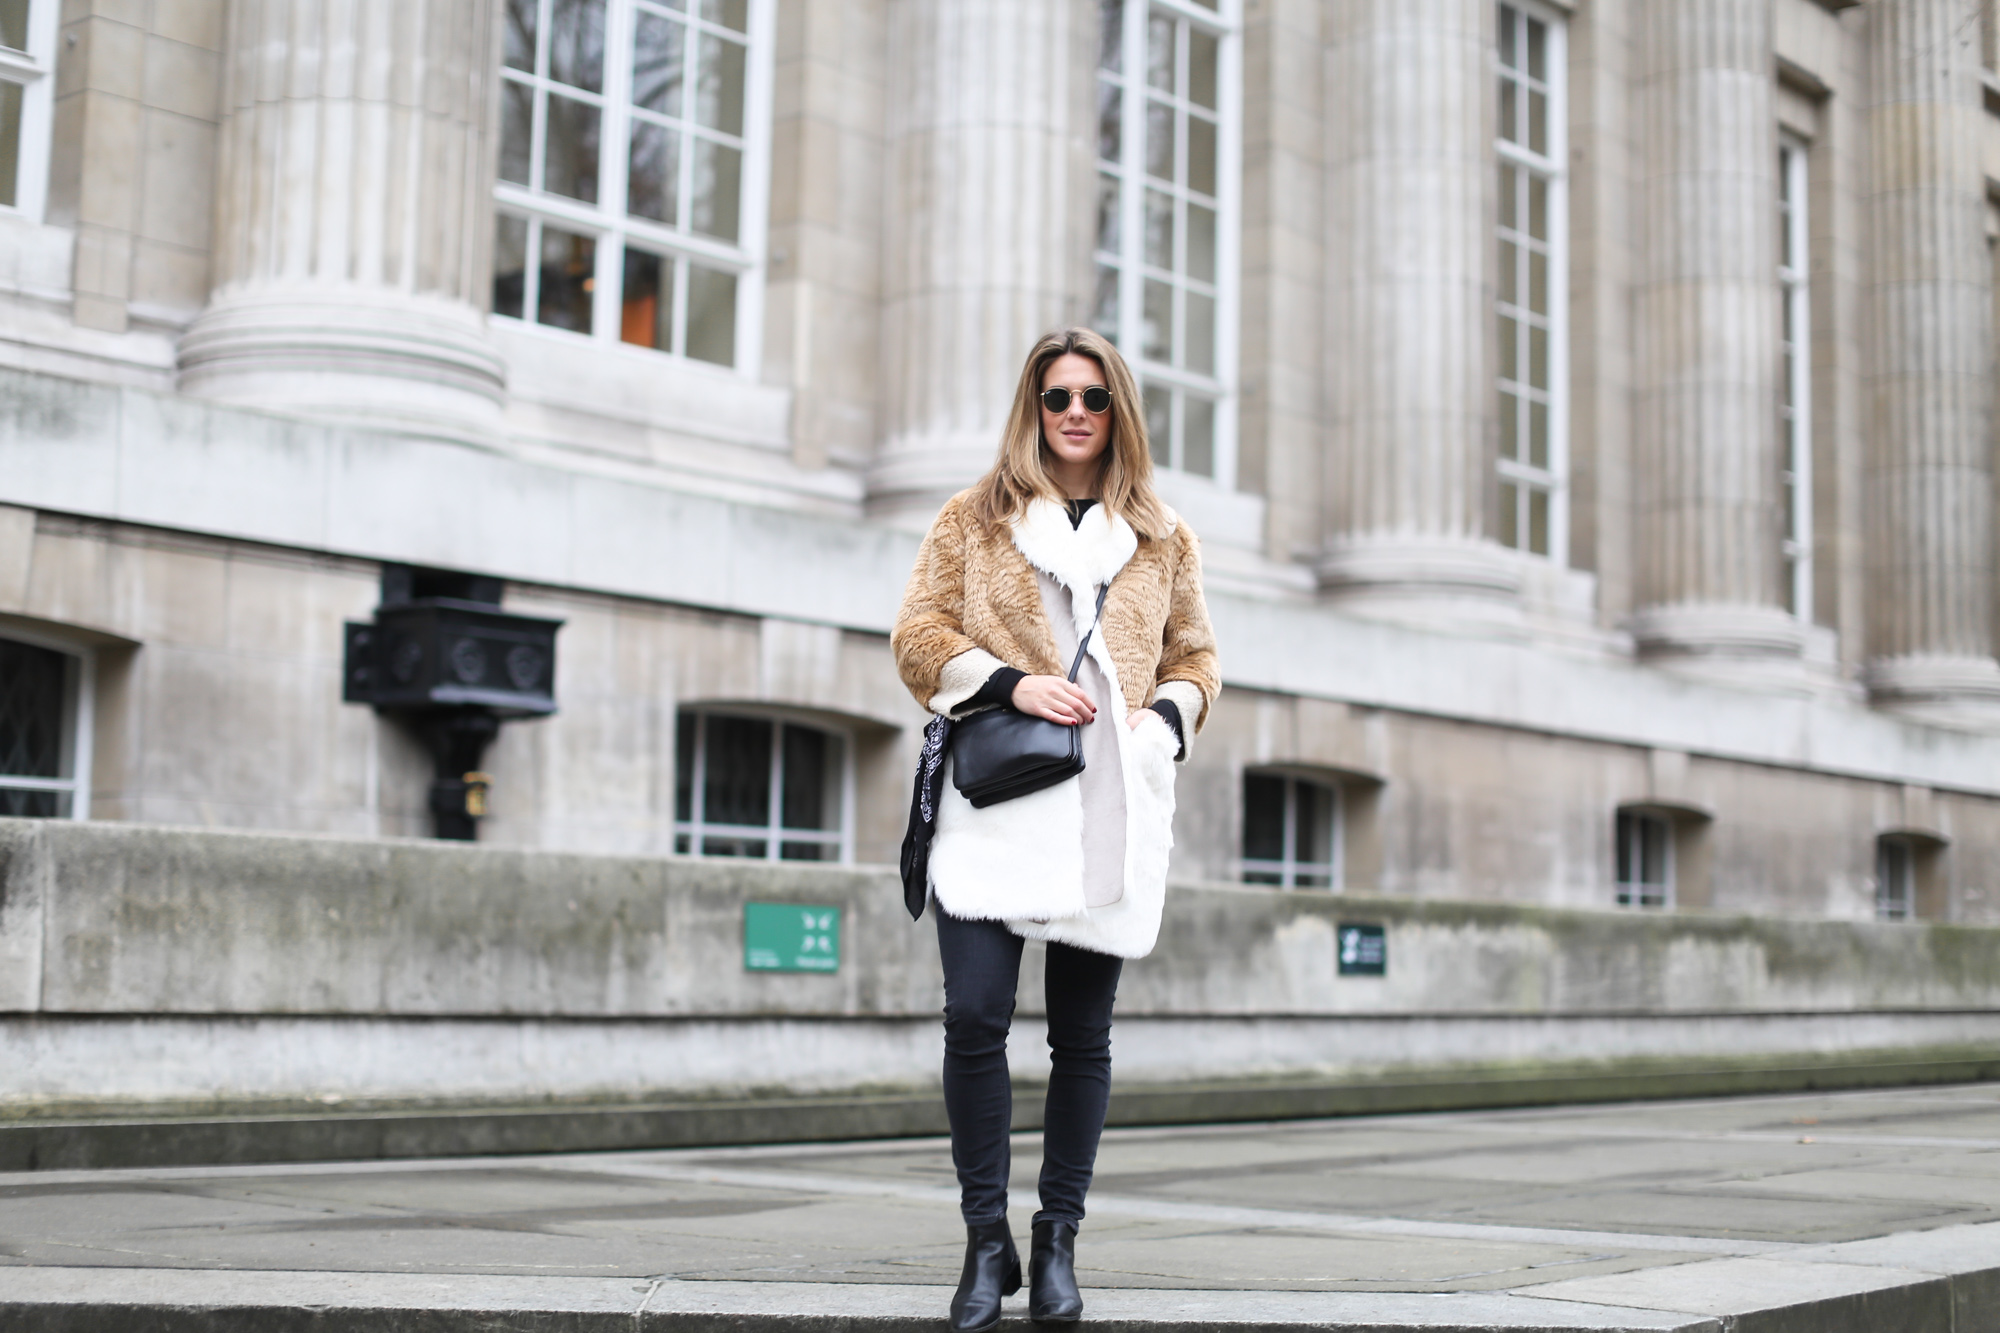 clochet_streestyle_london_asos_faux_fur_patchowork_coat_topshop_jamie_jeans